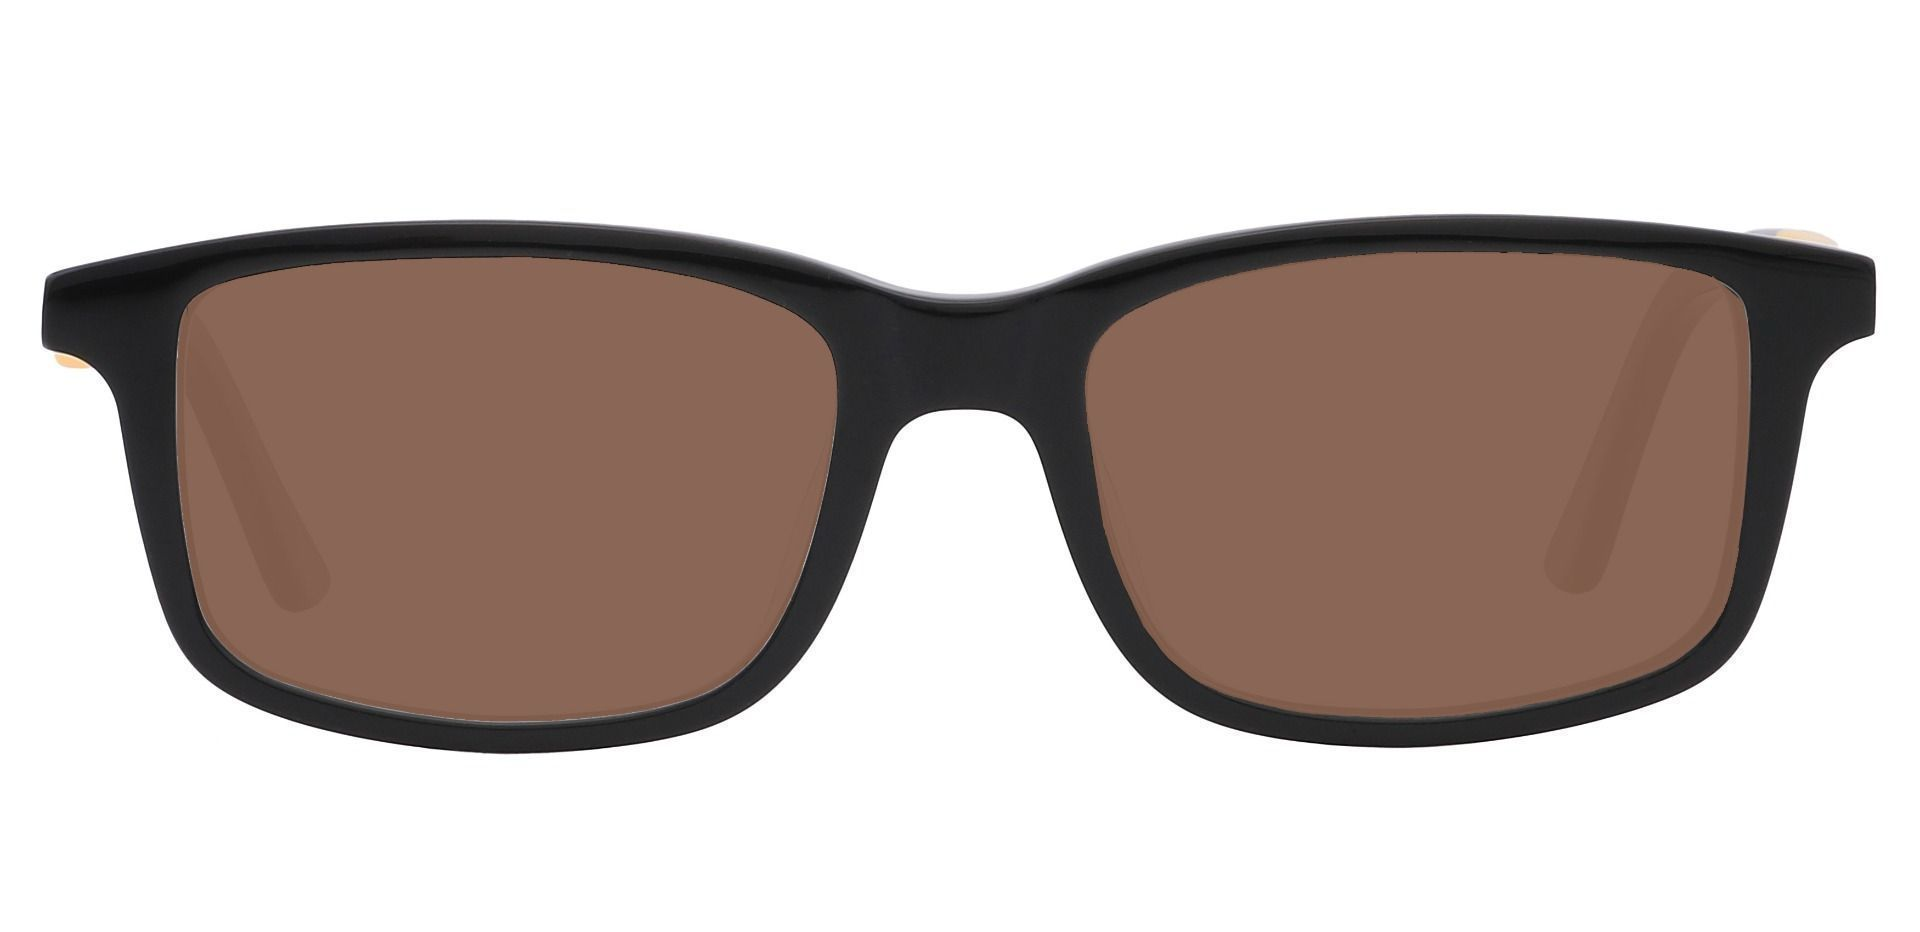 Rivers Rectangle Single Vision Sunglasses - Black Frame With Brown Lenses